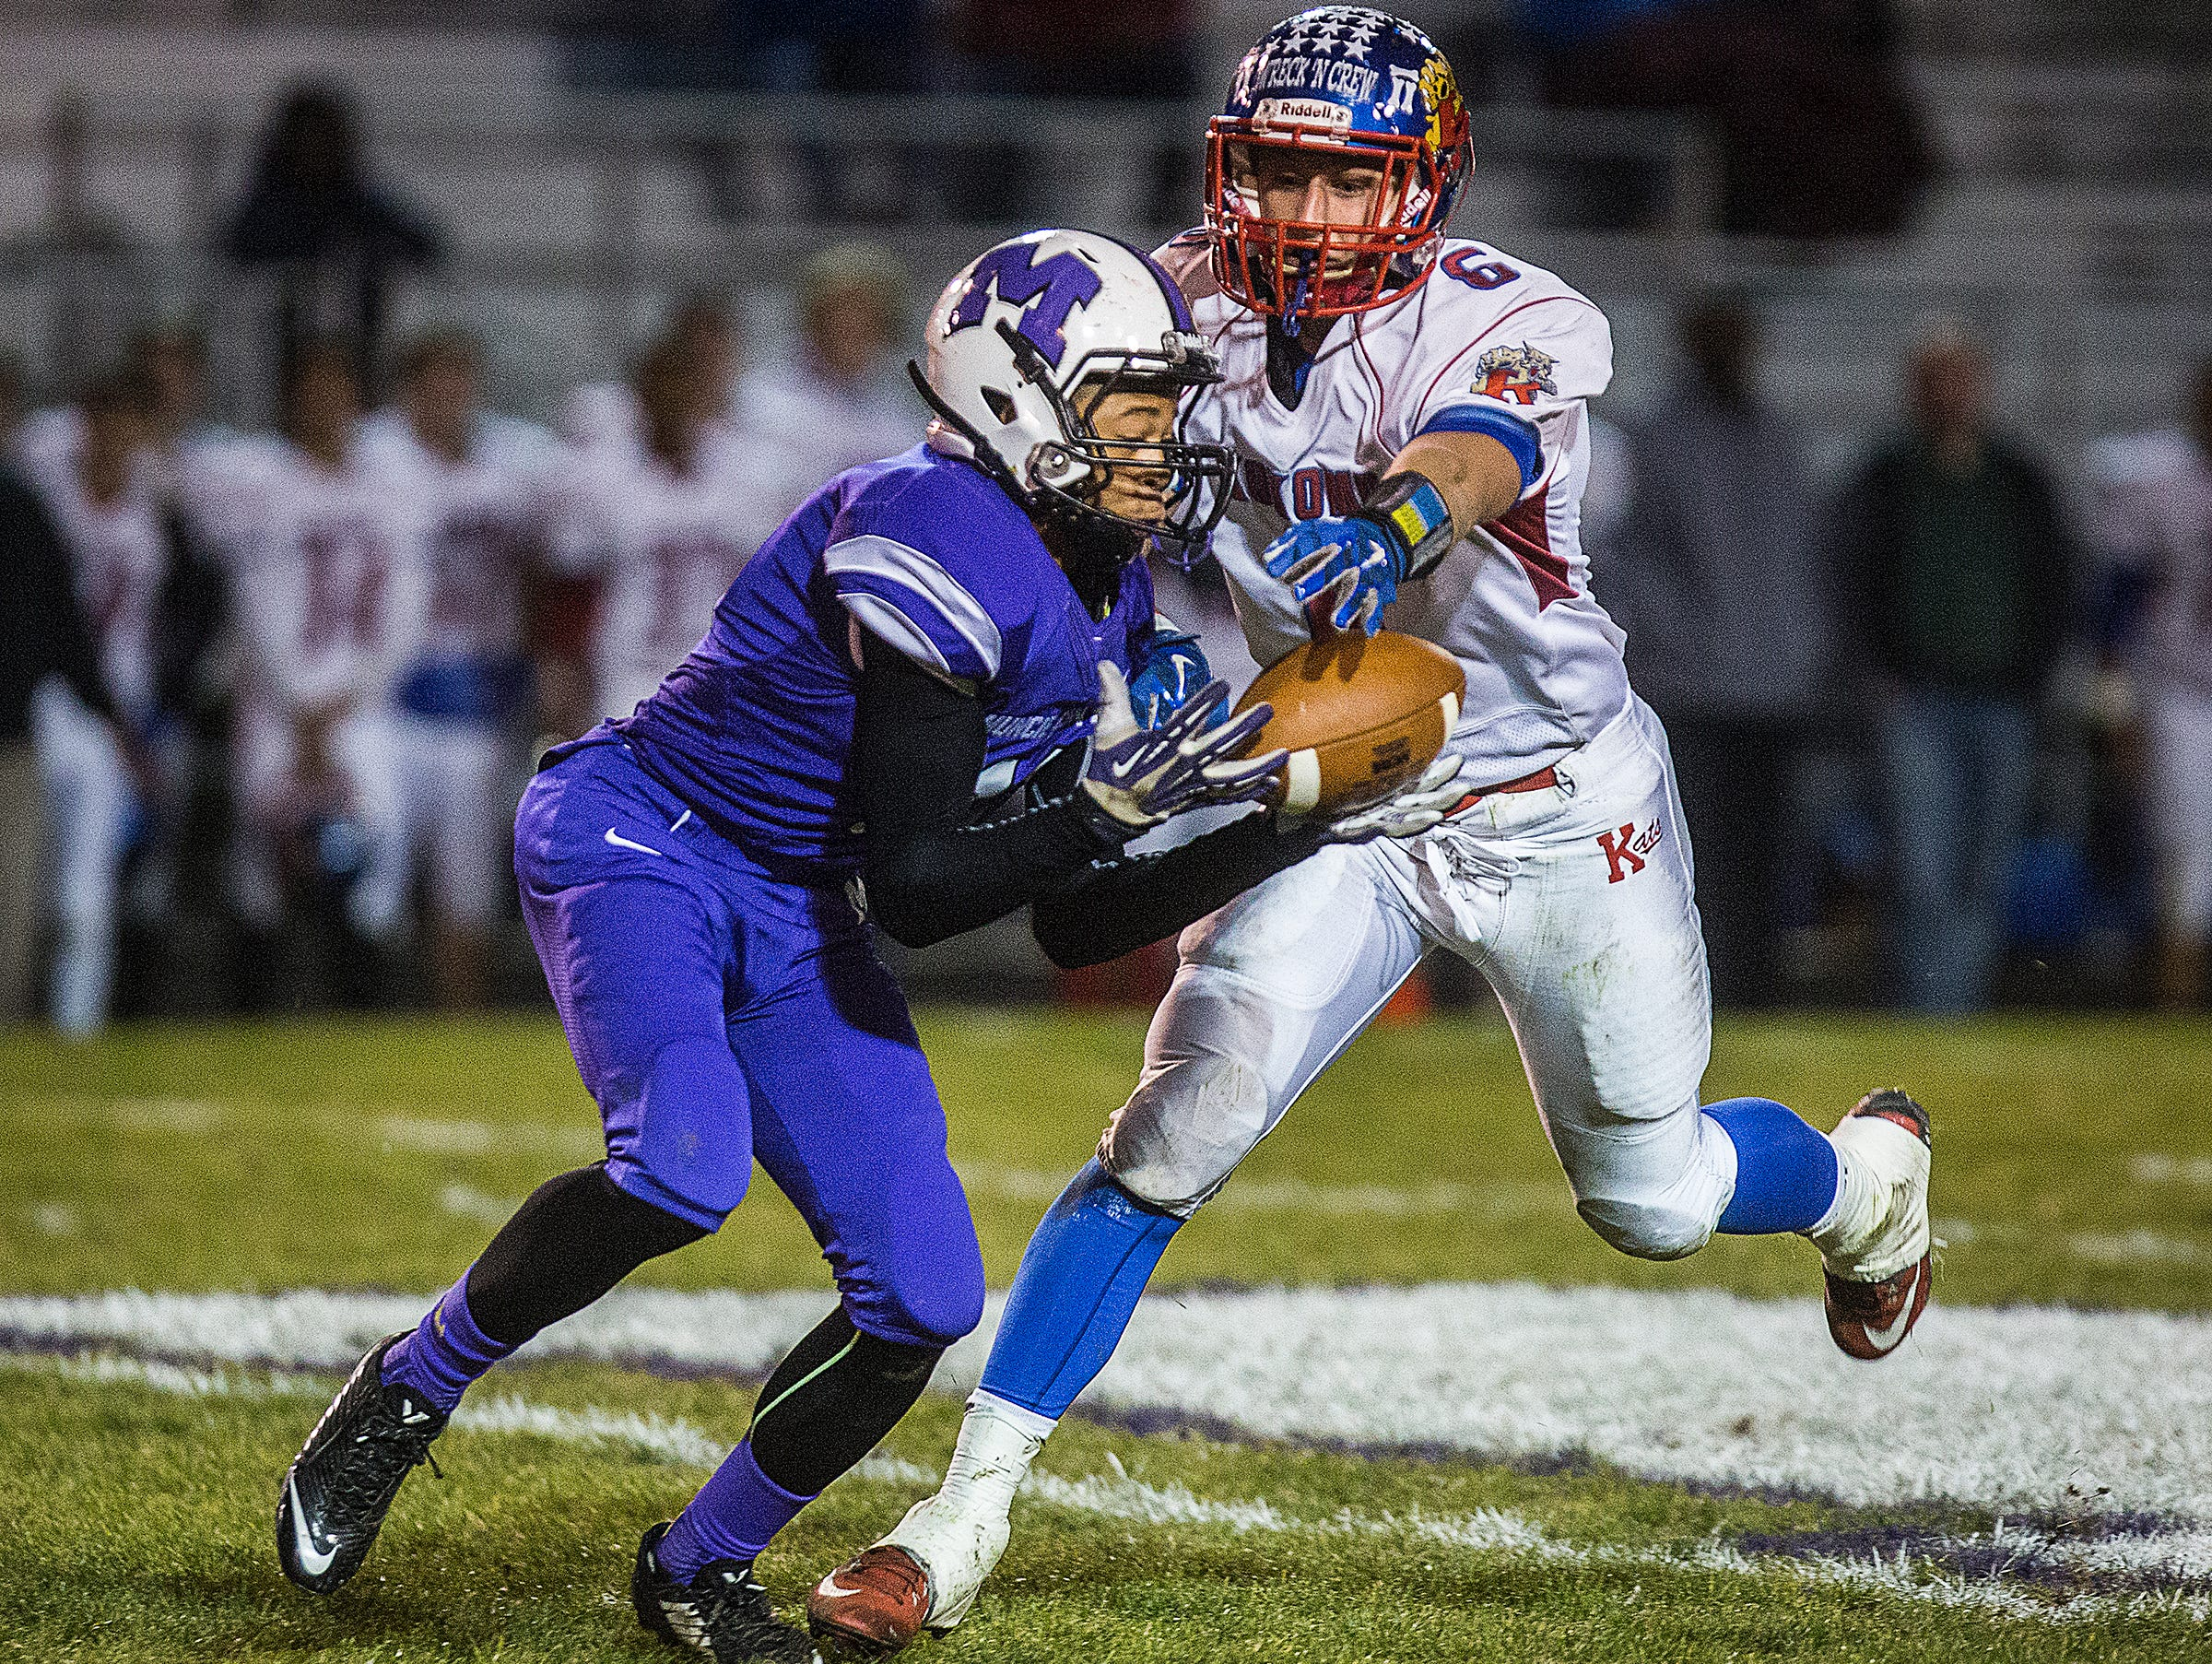 Central's Eliseus Young catches a pass from Trenton Hatfield past Kokomo's defense during their game at Central Friday, Oct. 30, 2015.